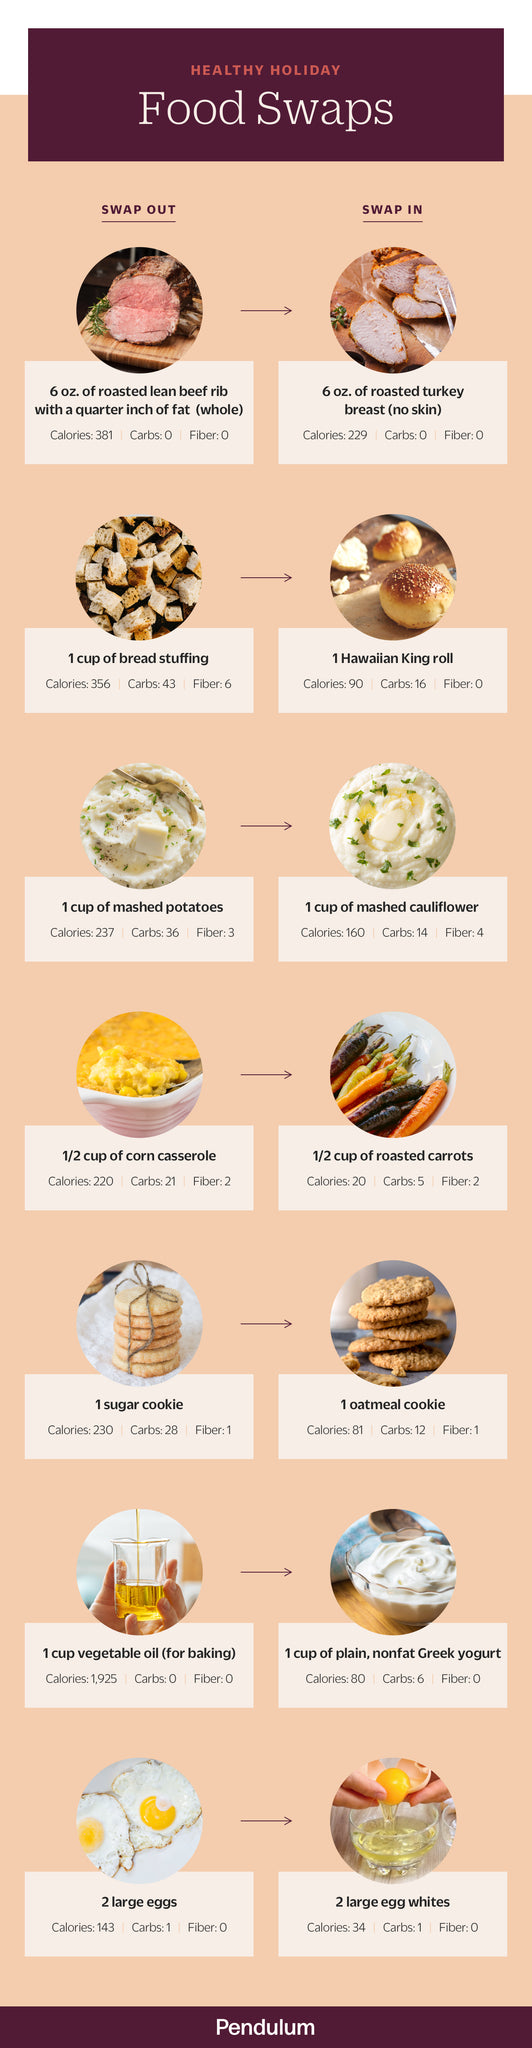 Healthy holiday food swaps infographic